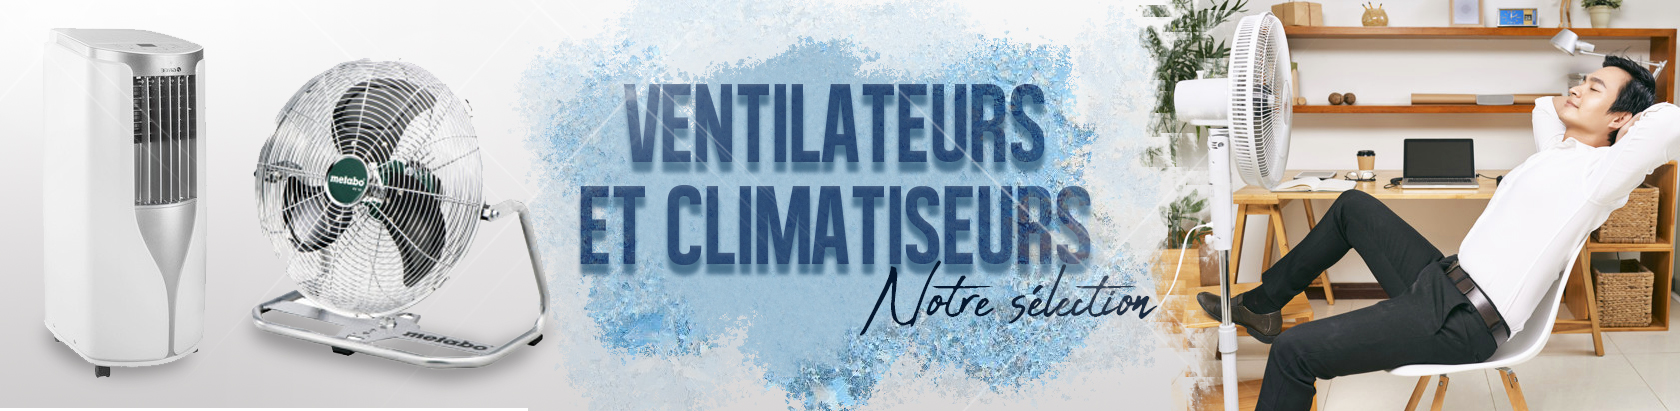 Climatiseurs 2020